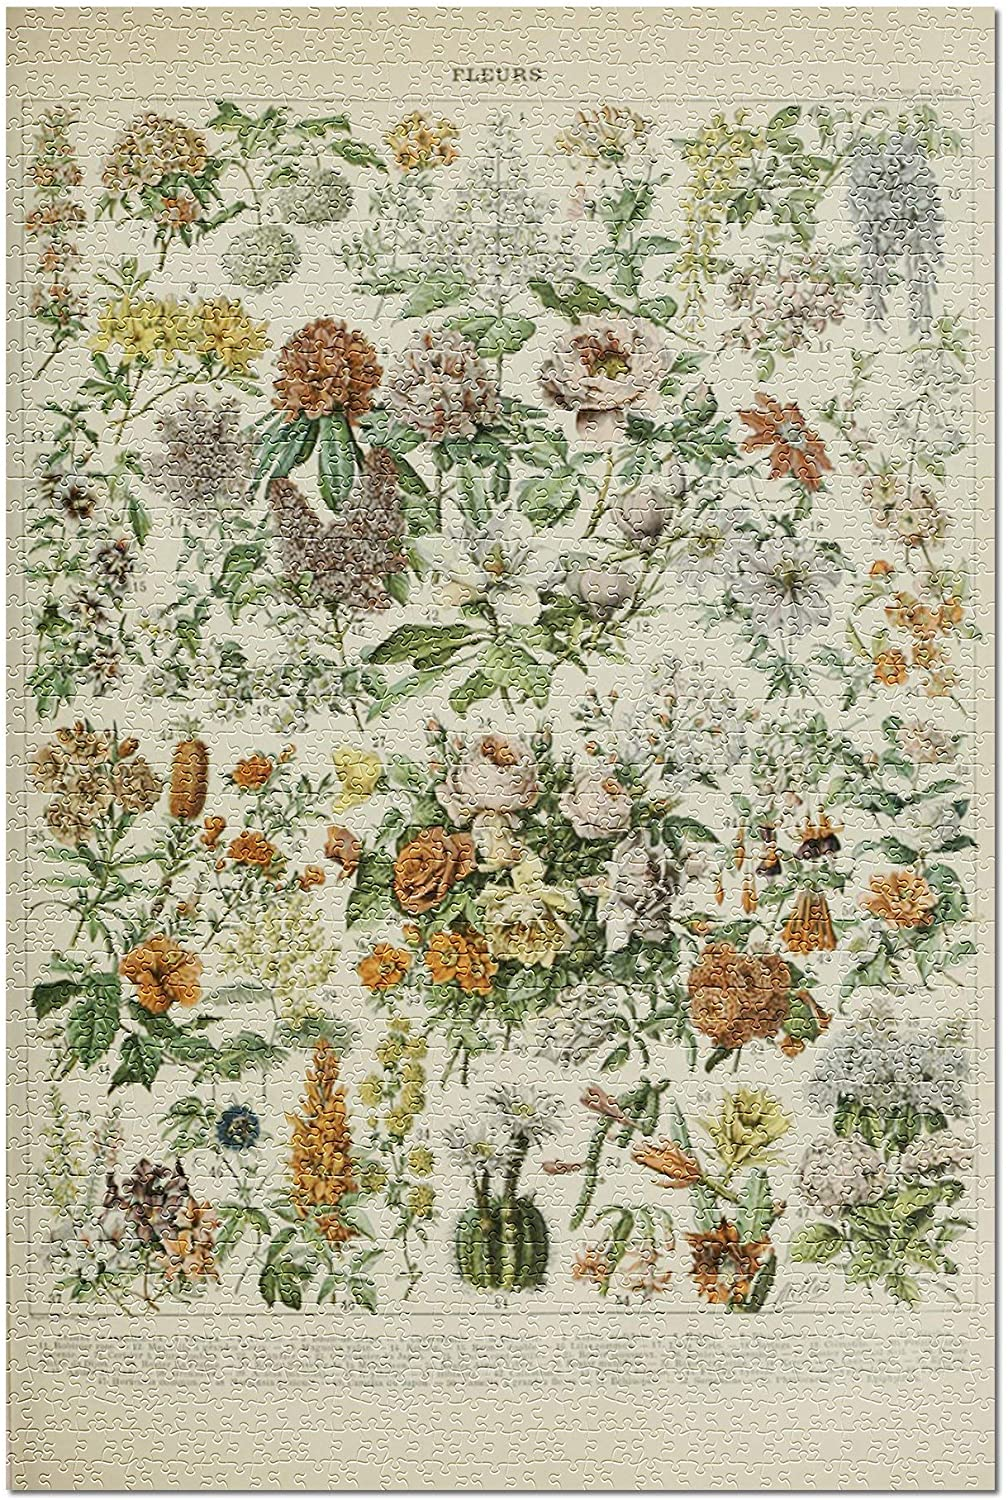 Assorted Flowers - C - Vintage Bookplate - Adolphe Millot Artwork (Premium 1000 Piece Jigsaw Puzzle for Adults, 19x27)